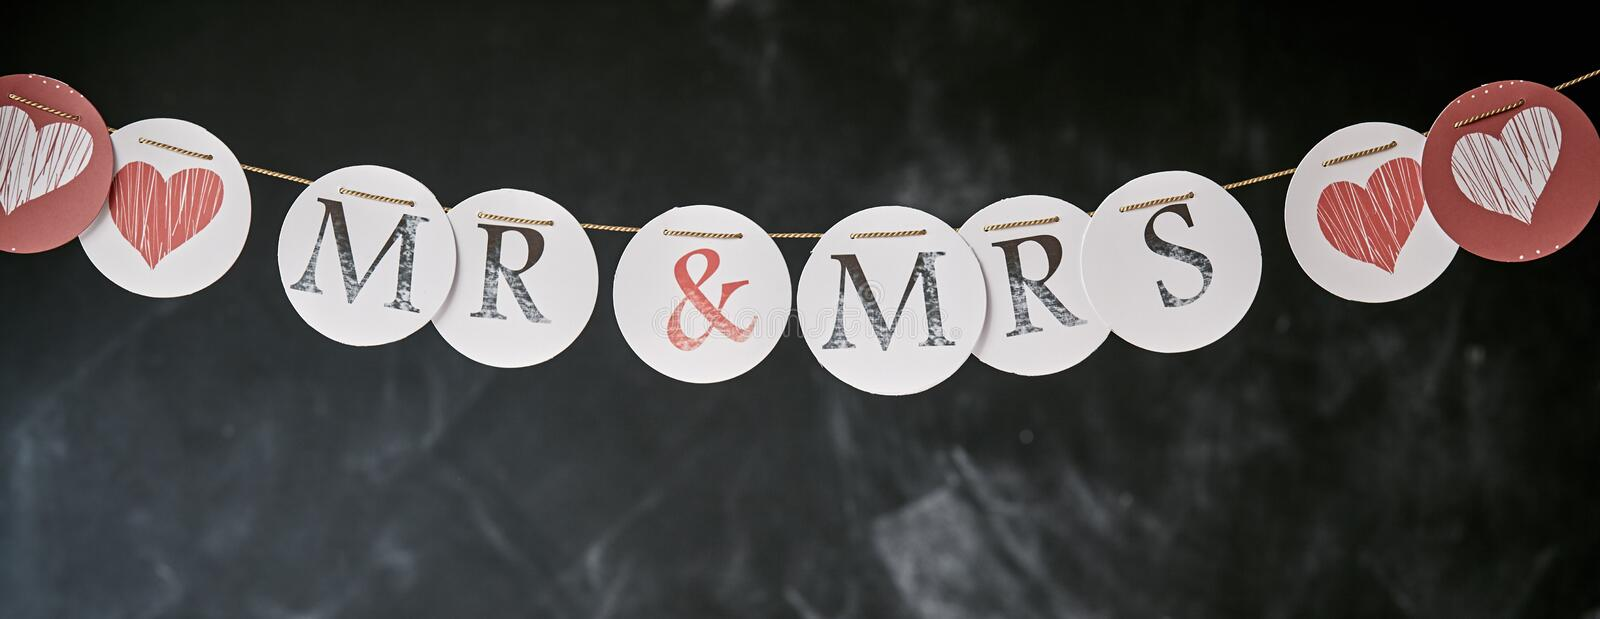 Mr and Mrs wedding garland panoramic banner stock photography